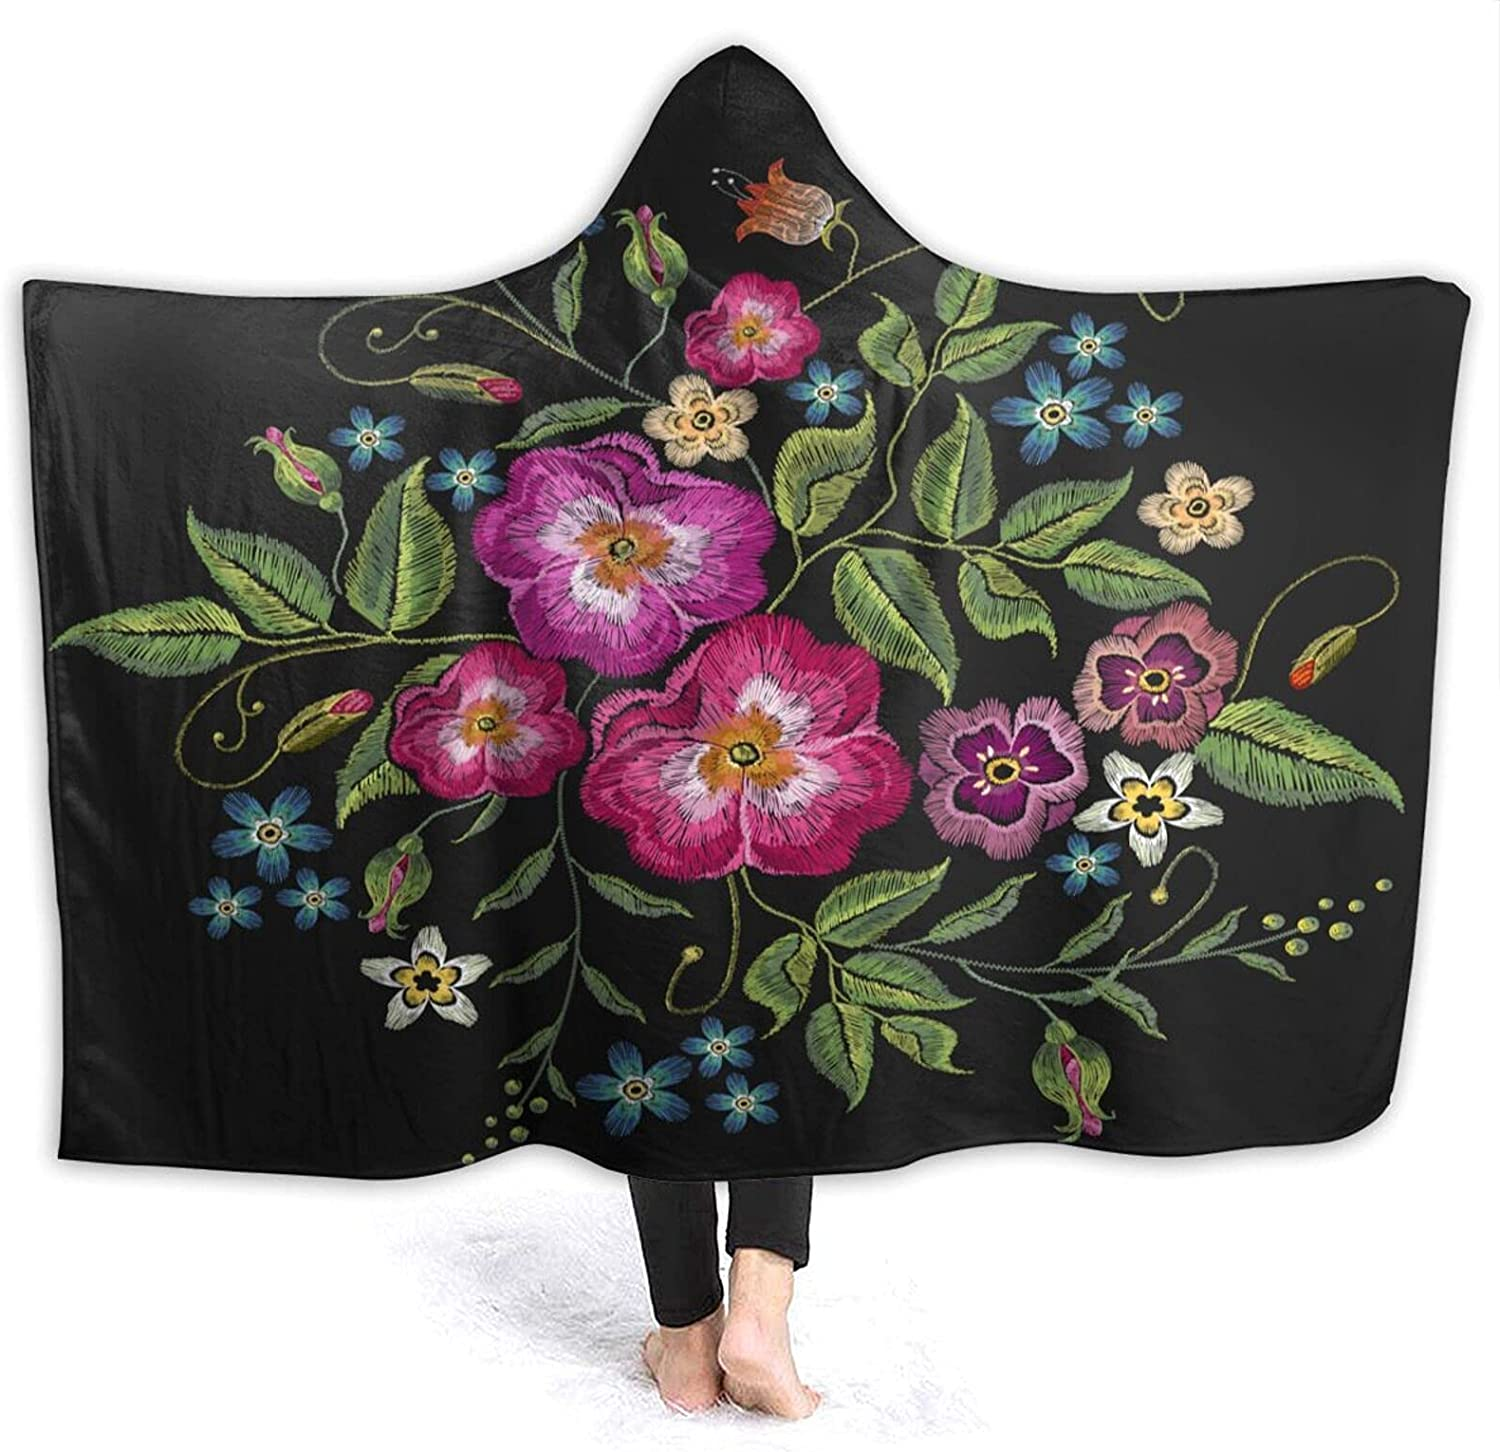 Hooded Max 59% OFF Blanket Surprise price Colorful Trend Floral Hood Pattern with Butterfly